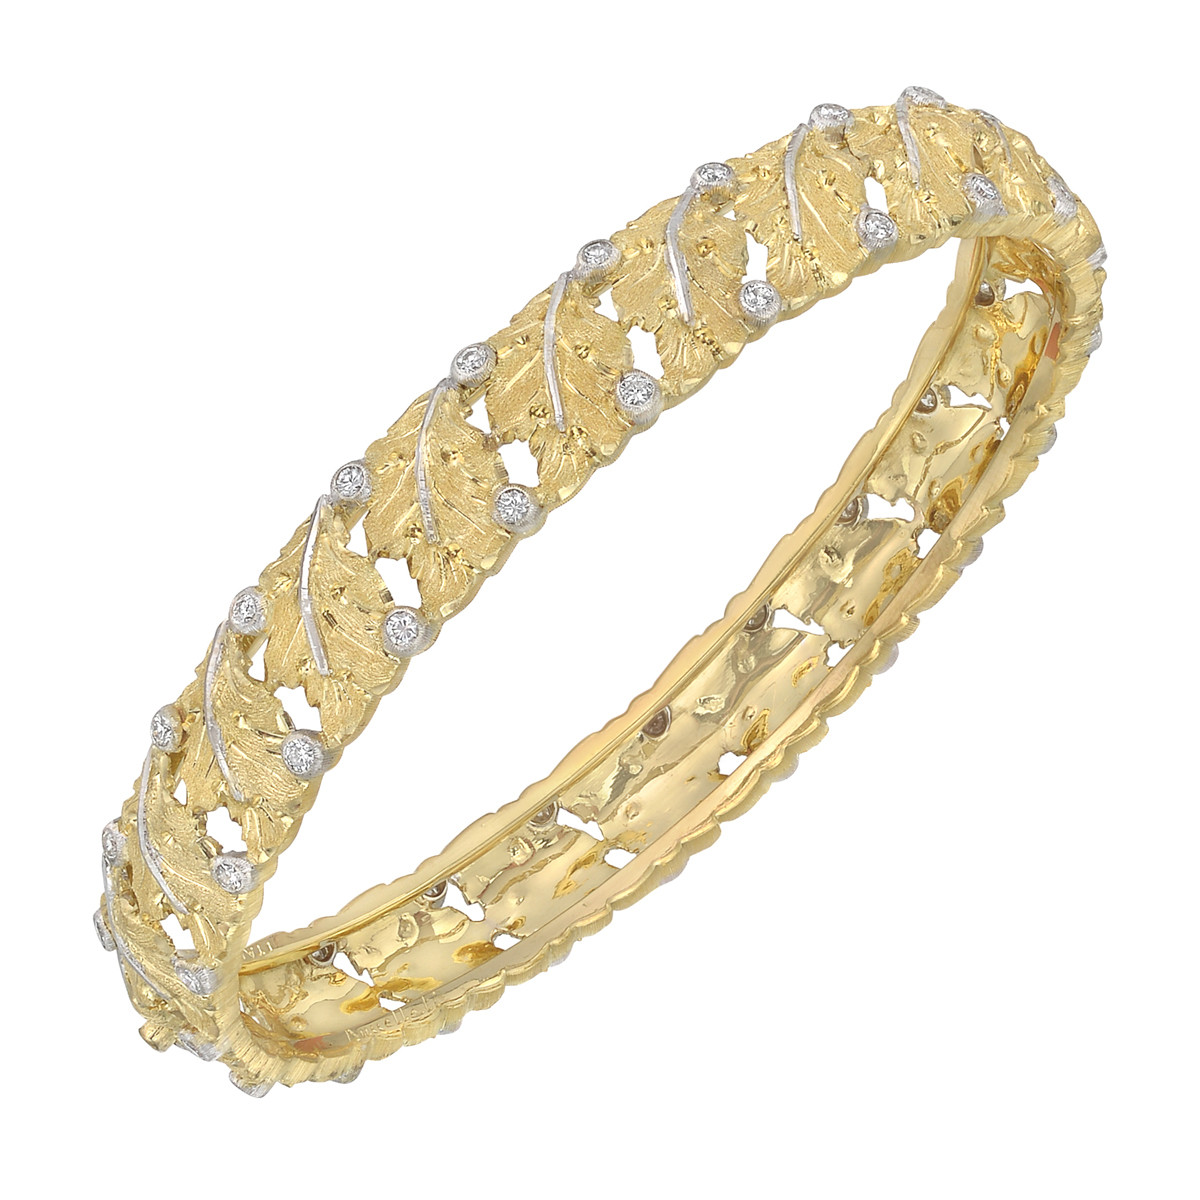 18k Gold & Diamond Leaf Bangle Bracelet